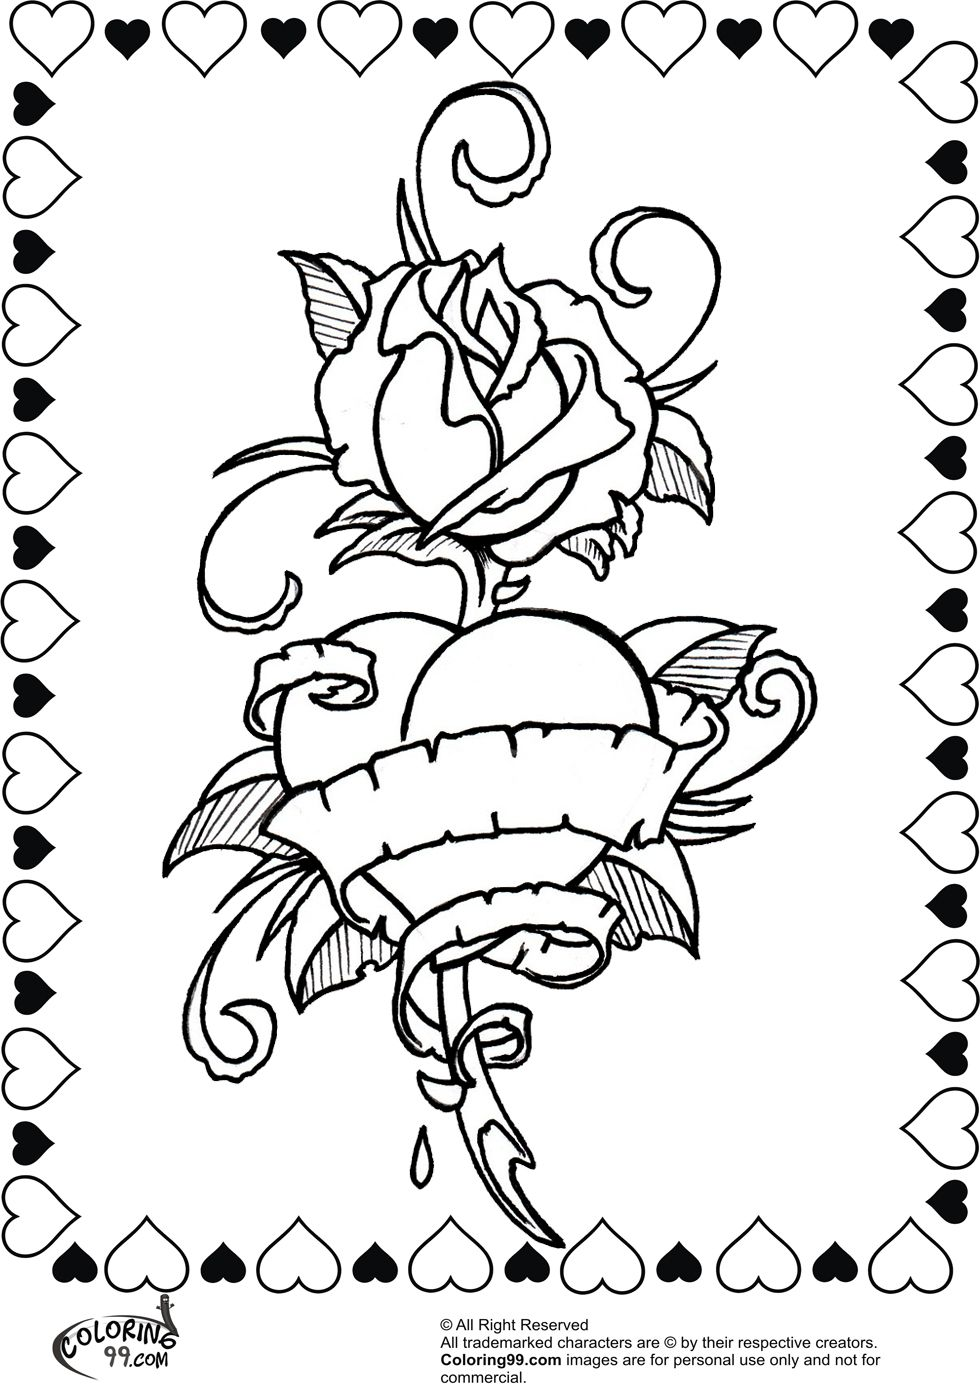 Rose Valentine Heart Coloring Pages Team Colors Heart Coloring Pages Love Coloring Pages Skull Coloring Pages